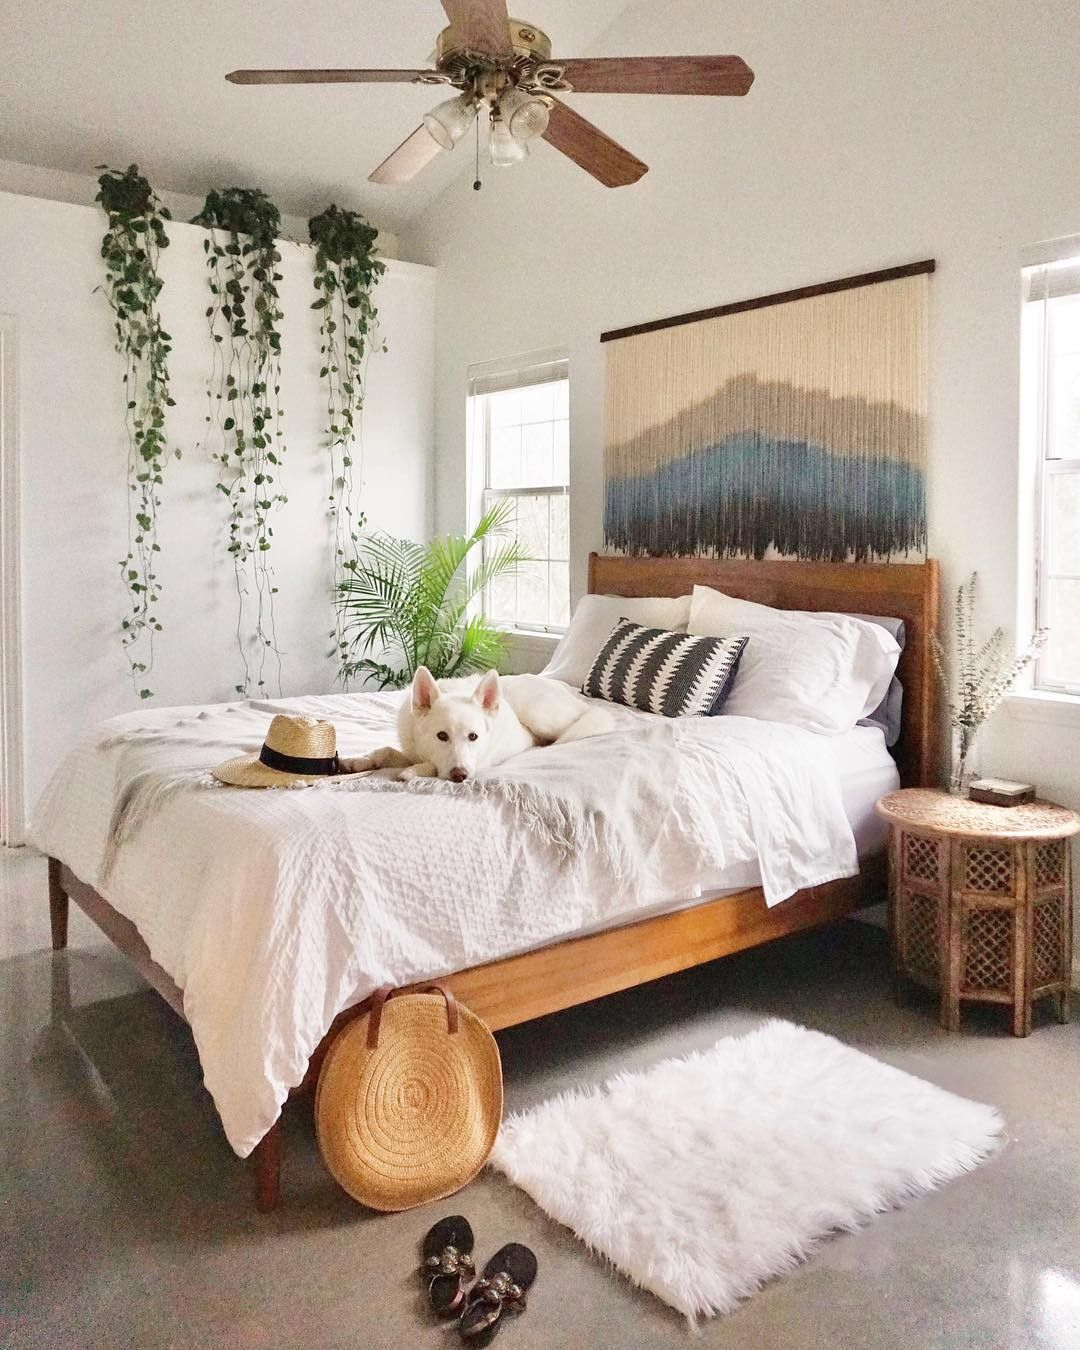 Beautify Your Home Bohemian Style Beds | Remodel bedroom ... on Boho Modern Bedroom  id=85907